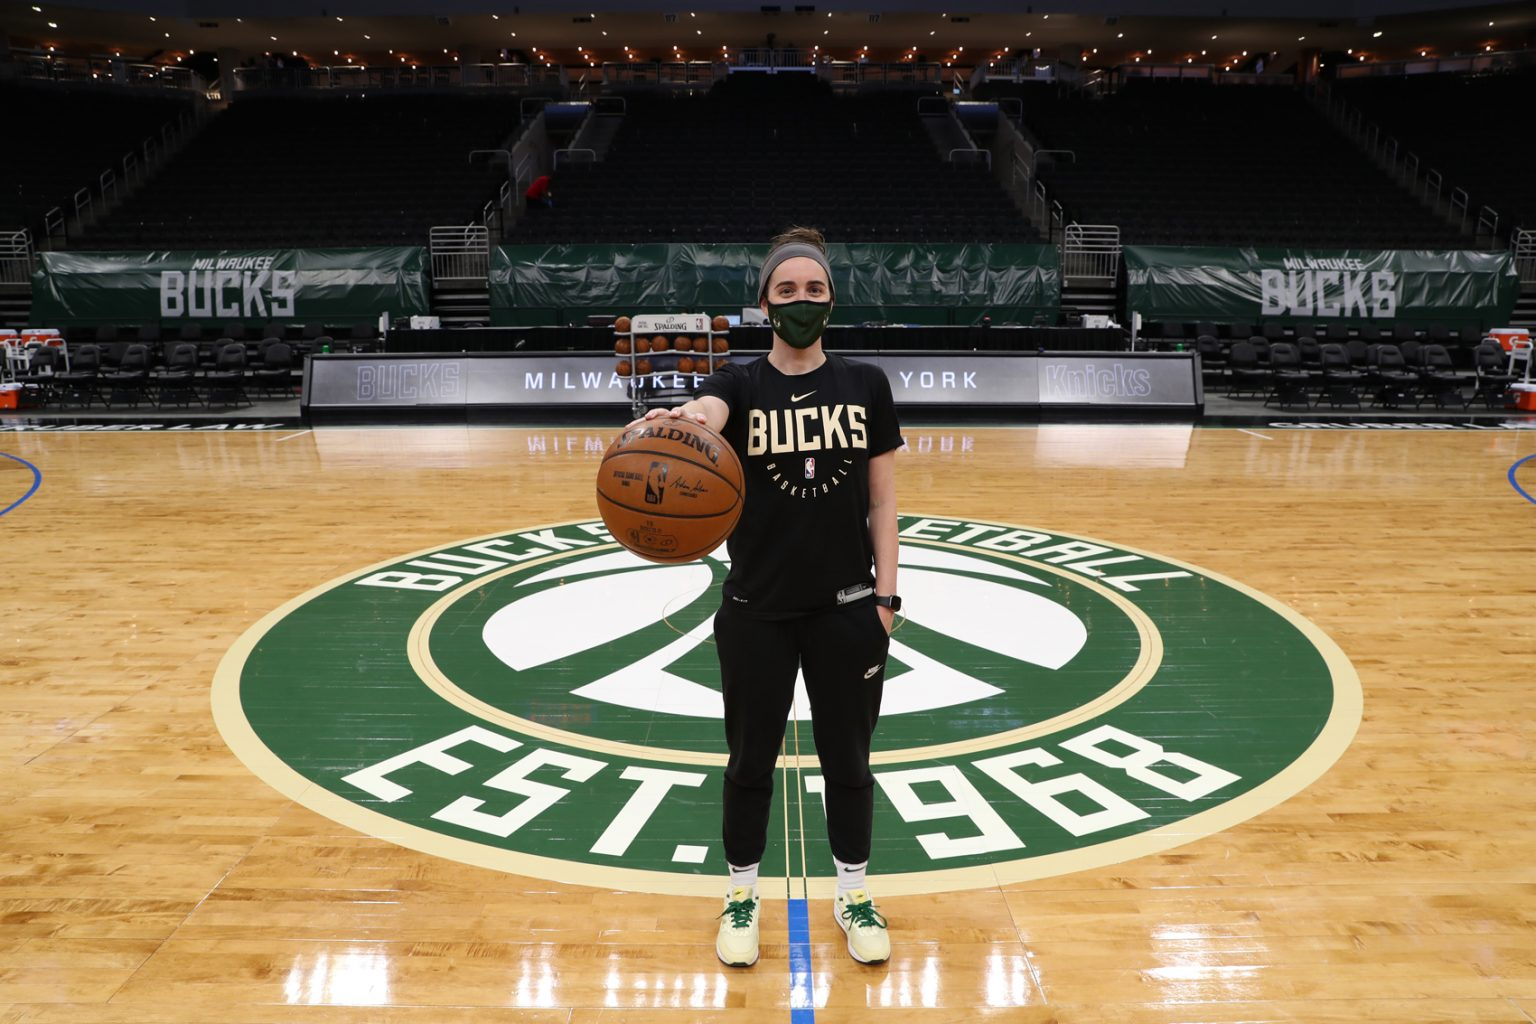 Growing up in California, former Cougars women's basketball player Sidney Dobner never imagined she would be a student-athlete in Saskatchewan, let alone coach in the National Basketball Association. (Photo courtesy of Milwaukee Bucks.)